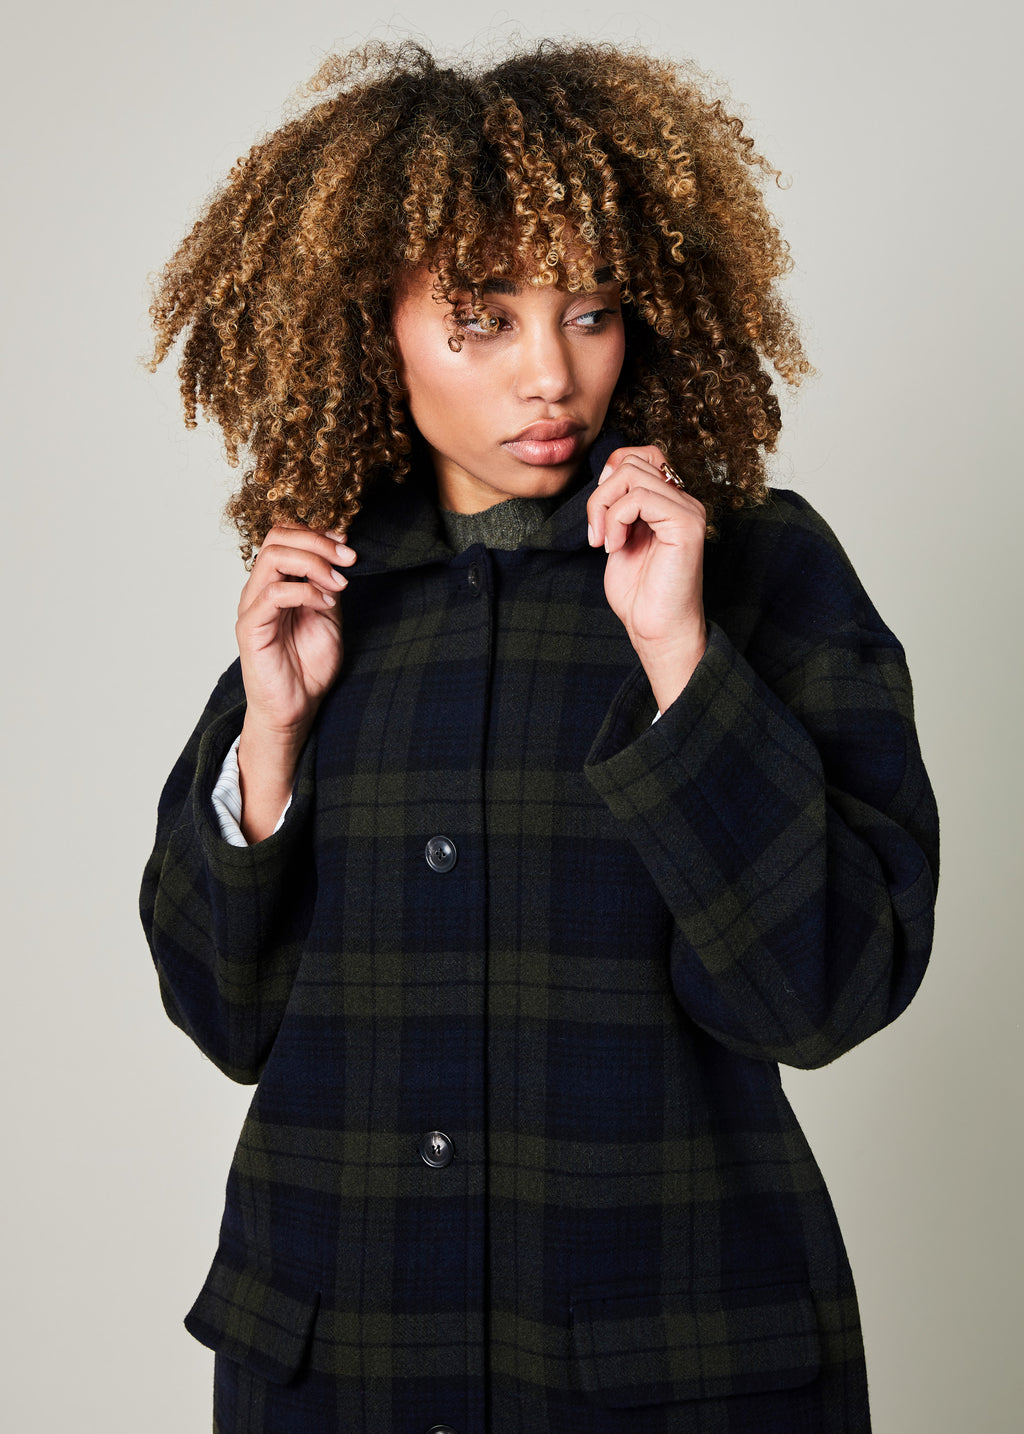 Christiane Tartan Wool Coat